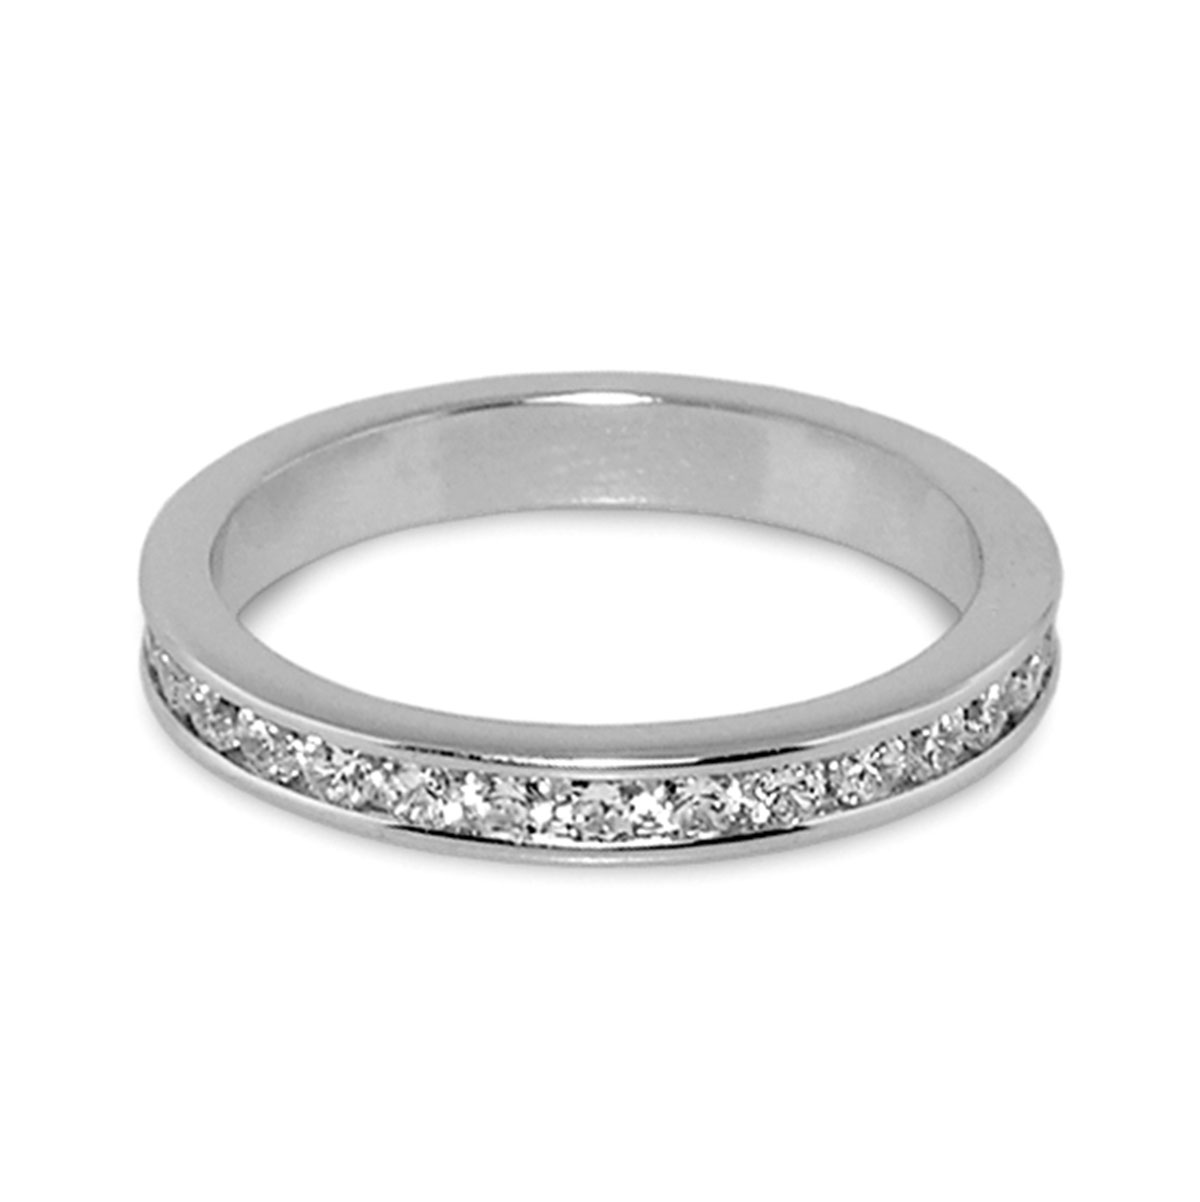 Rhodium 3mm 'Eternity' Ring